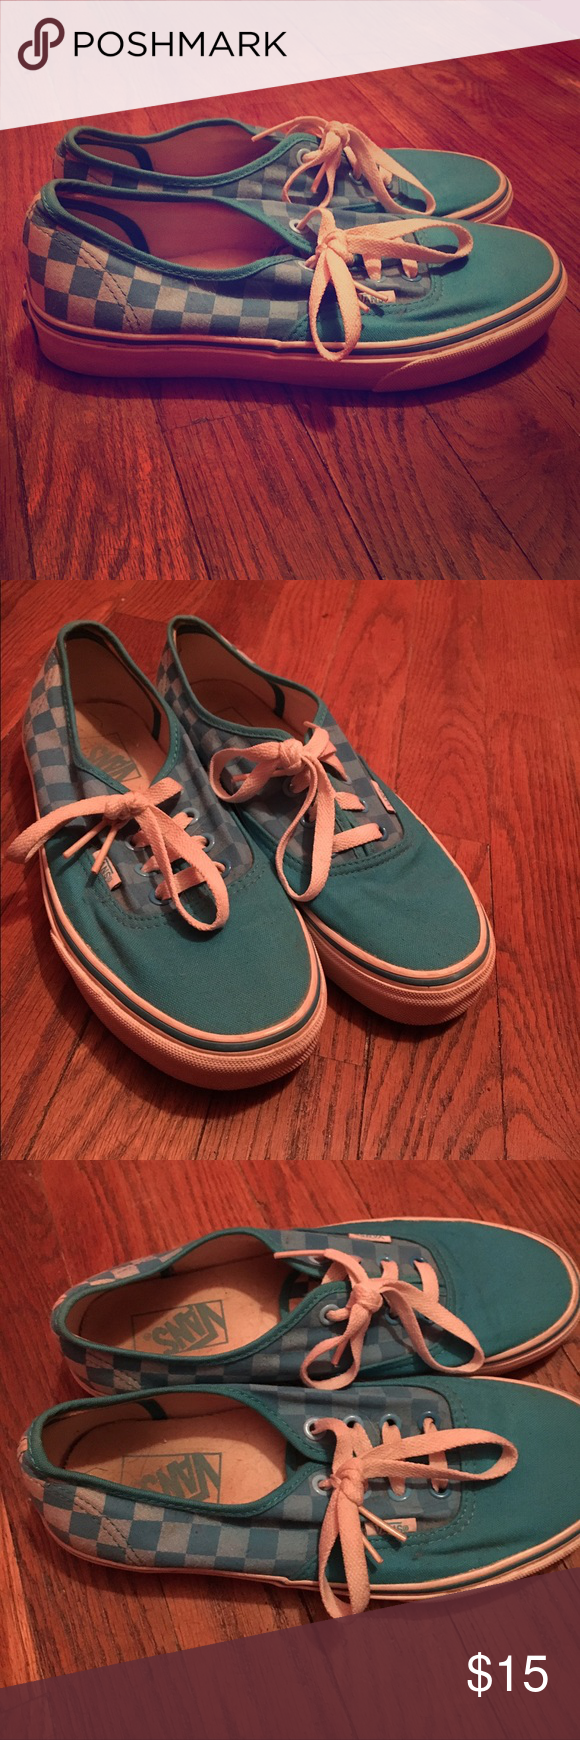 Blue and White Checkered Vans Normal signs of wear,but in good condition.Size is 7.5 for women,6 for men. Vans Shoes Sneakers